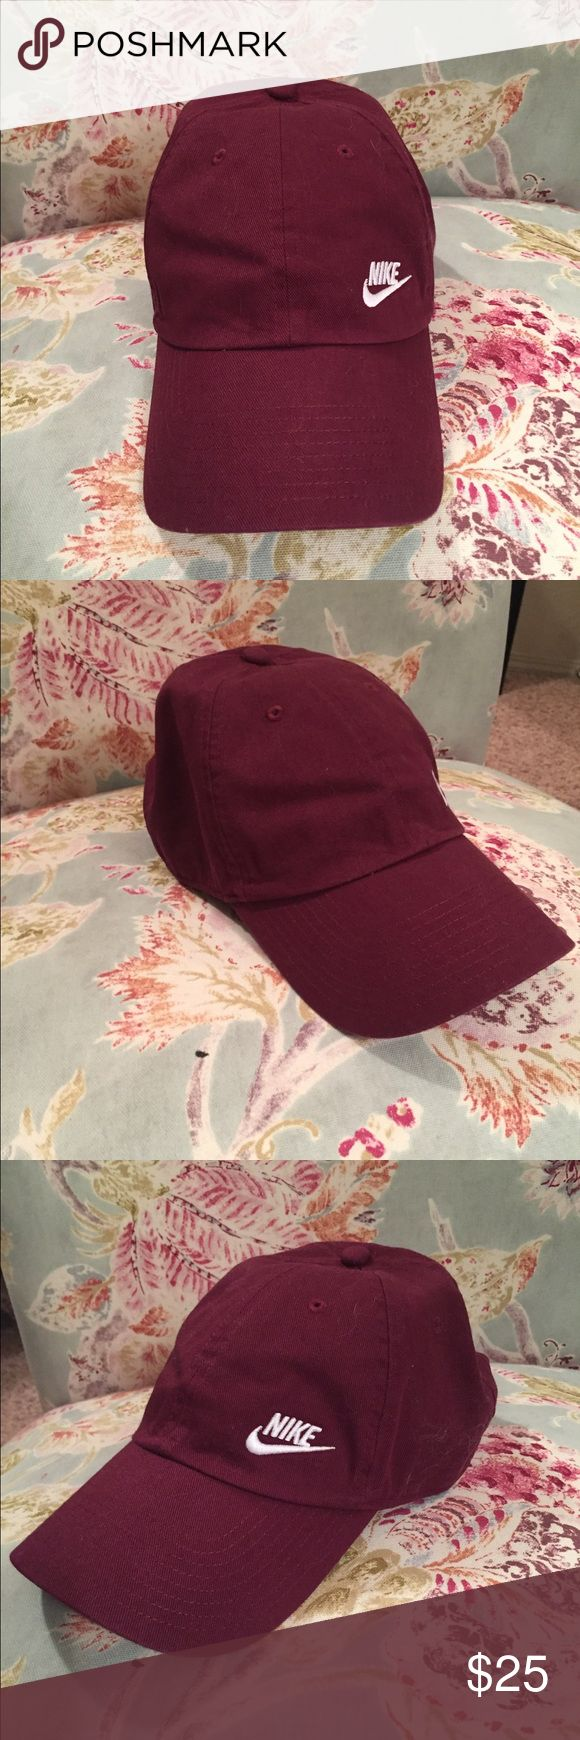 Nike hat BNWOT Brand new never worn no tags. Adjustable. Maroon color Nike Accessories Hats